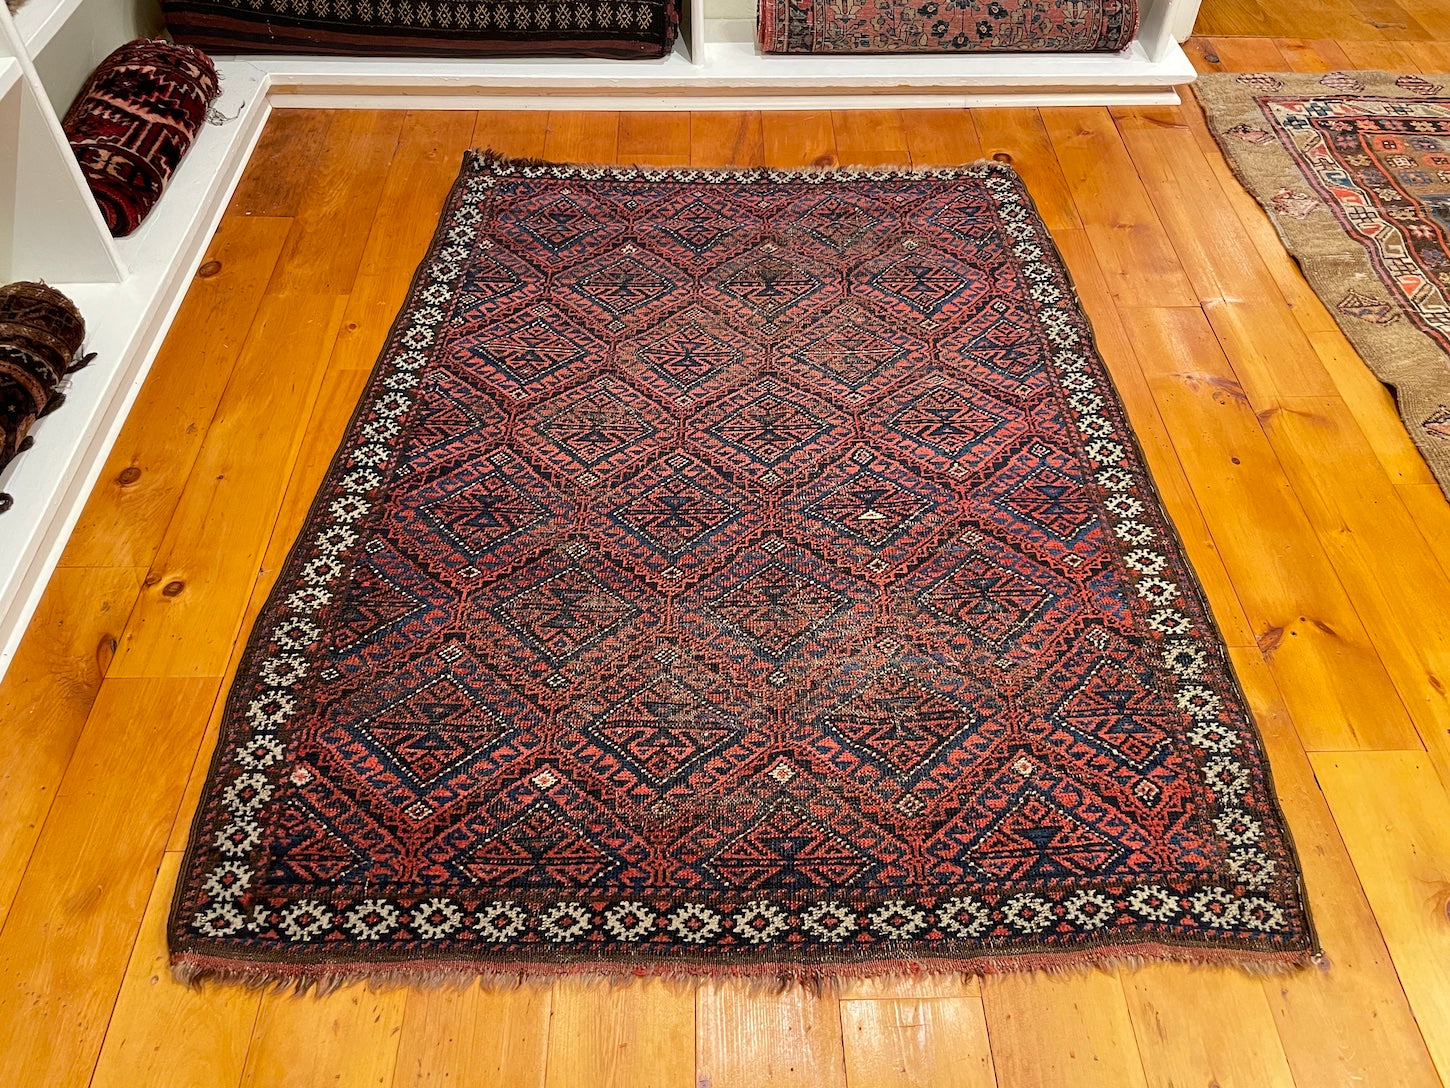 Antique Kurdish Rug 3'6 x 4'8